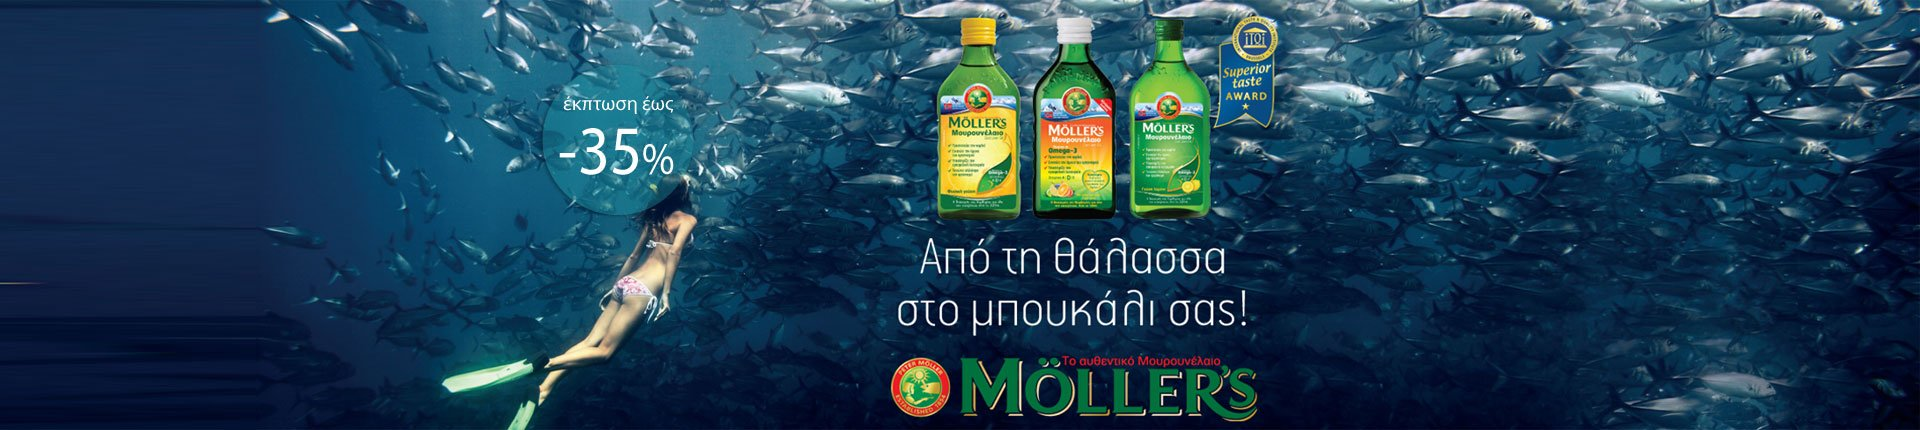 Mollers -35%